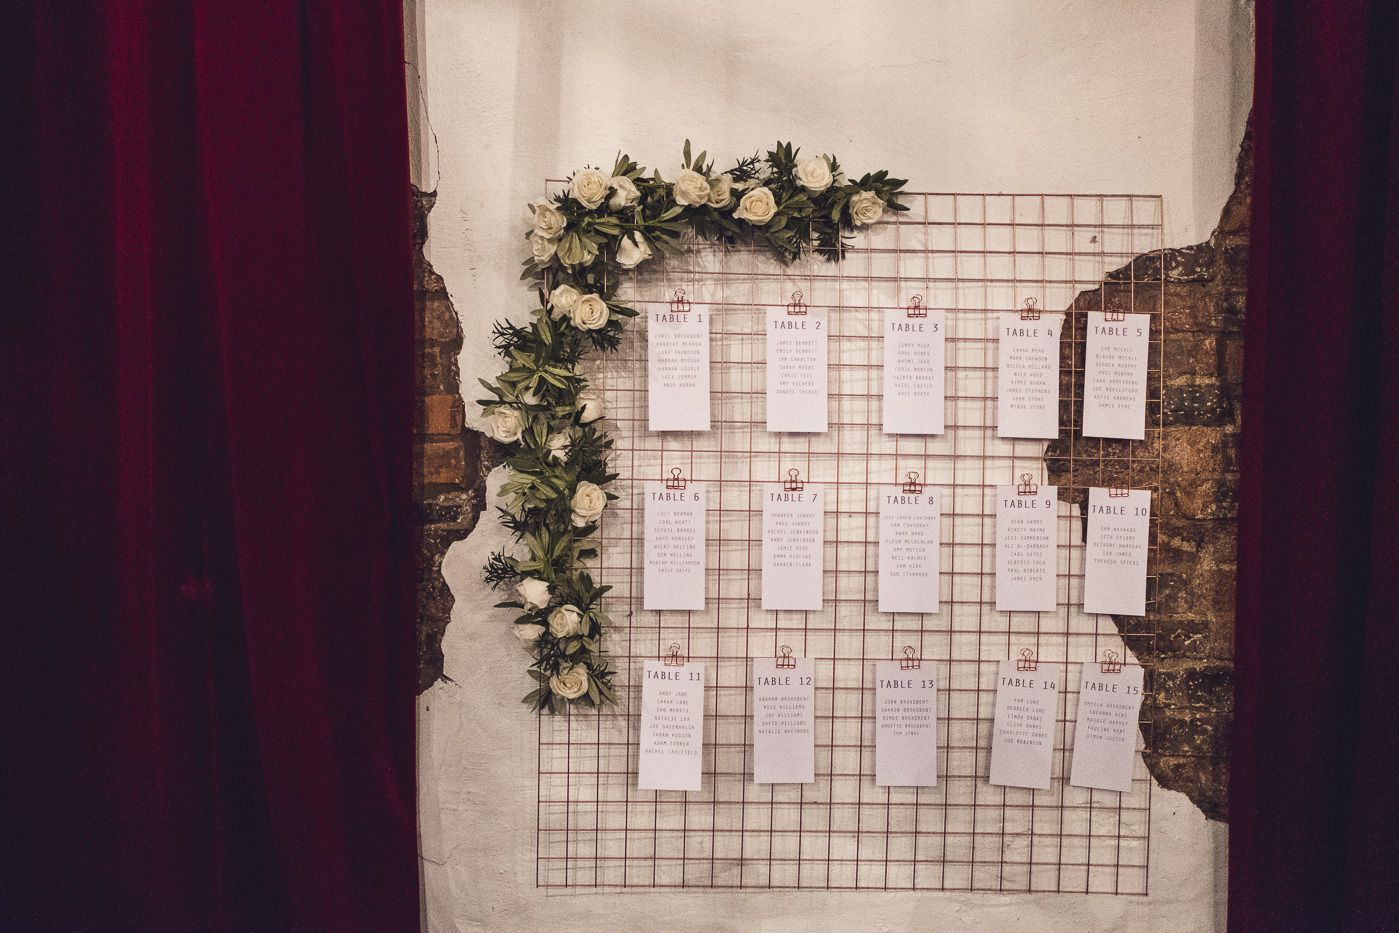 Wire Copper Table Plan | Contemporary City Wedding at People's History Museum & Hope Mill Theatre, Manchester Planned by Alternative Weddings MCR | Babb Photography -  Wire Copper Table Plan | Contemporary City Wedding at People's History Museum & Hope Mill Theatre - #Alternative #Babb #City #companyHistory #Contemporary #Copper #History #Historyarchitecture #Historycriativos #Historylayout #Historymap #Historymuseum #Historypainting #Historysubject #Hope #MANCHESTER #MCR #Mill #Museum #Peoples